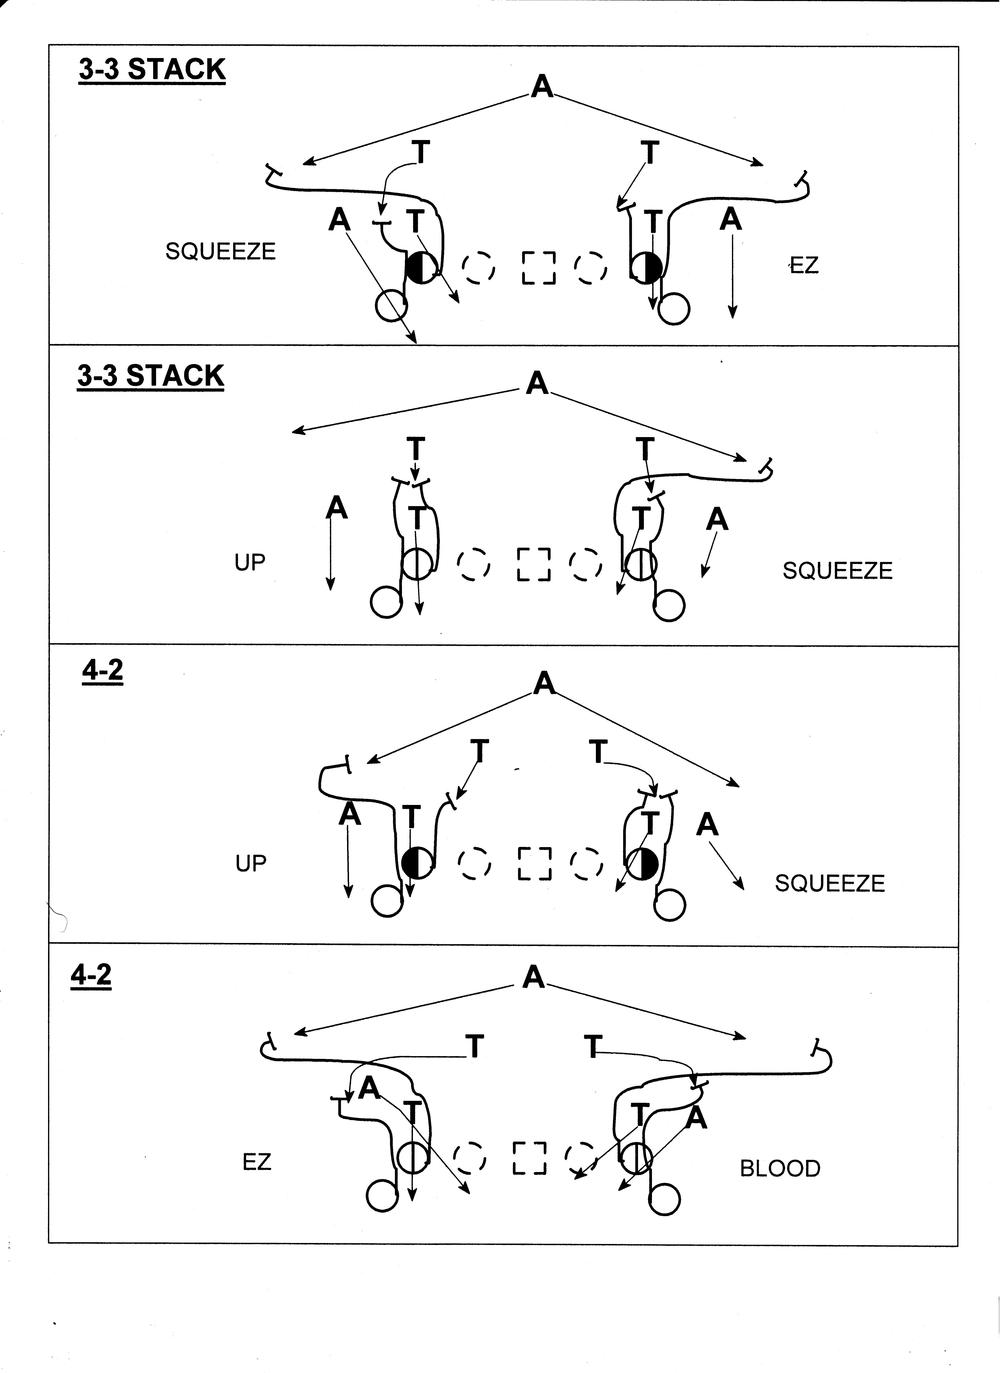 Defensive Stunts are the same, but the Tackle & A-back blocking scheme for Sprint Out protection is obviously different than listed in the diagram.